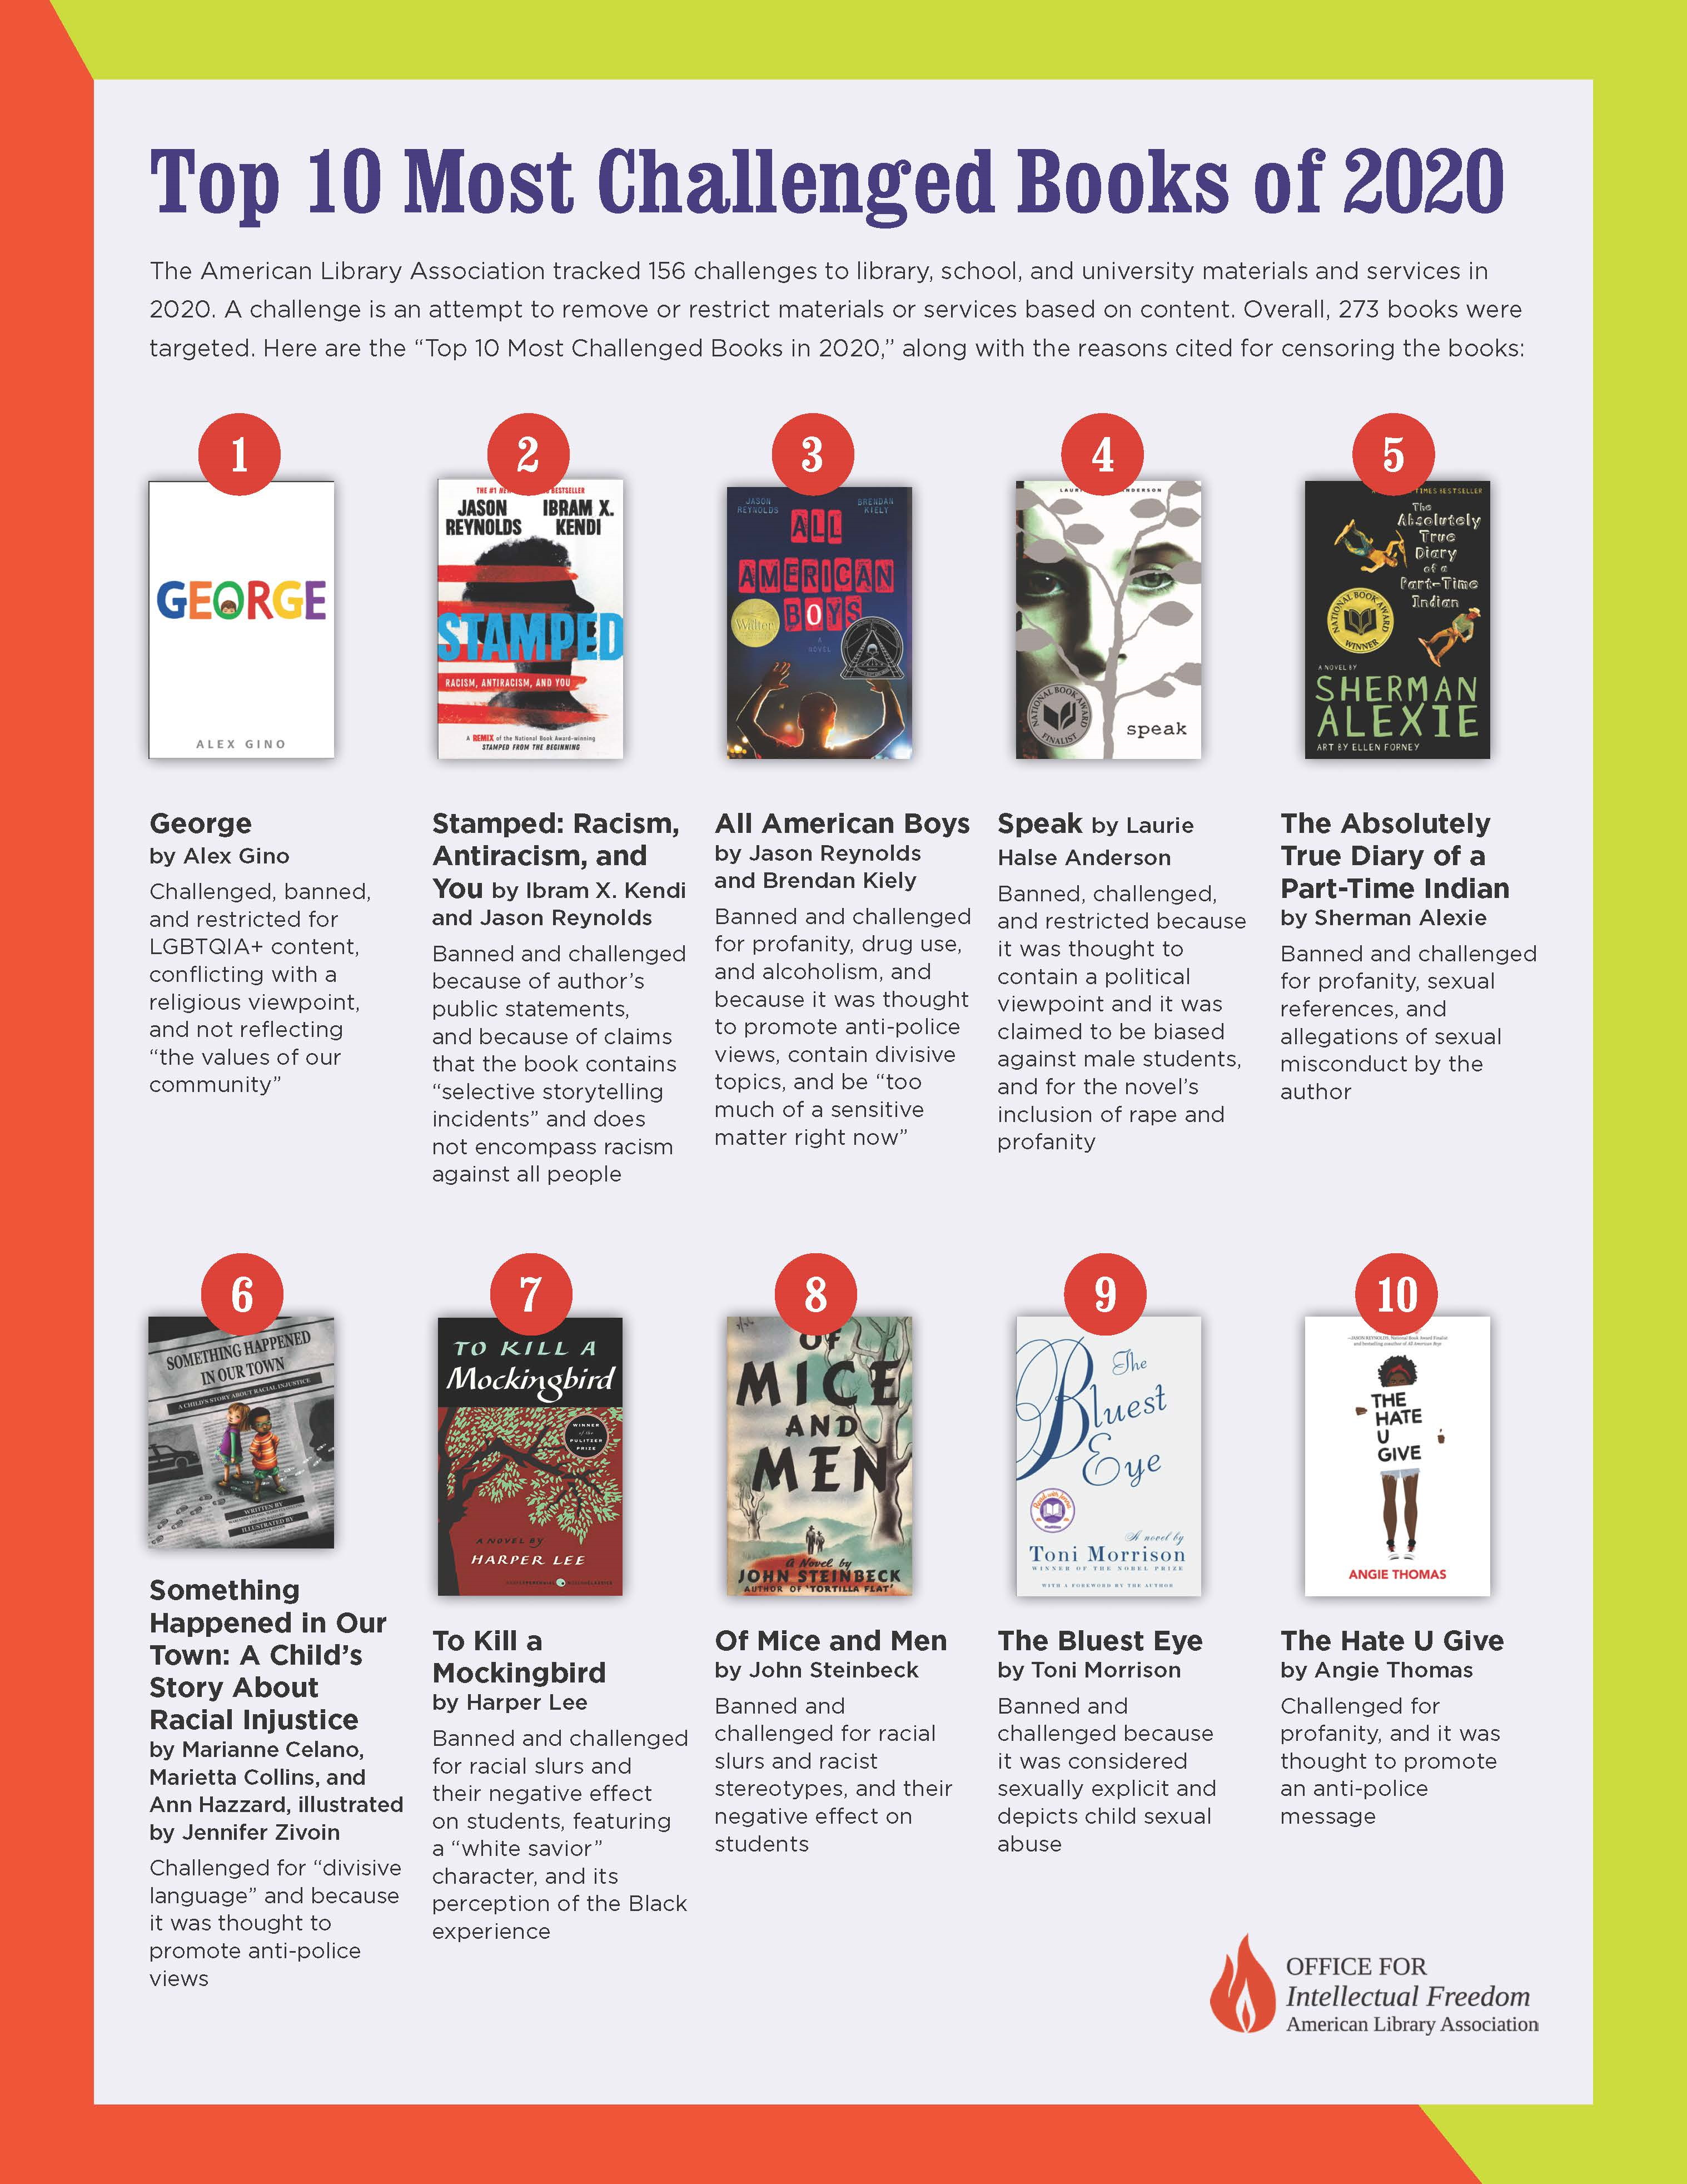 Top 10 Most Challenged Books of 2020